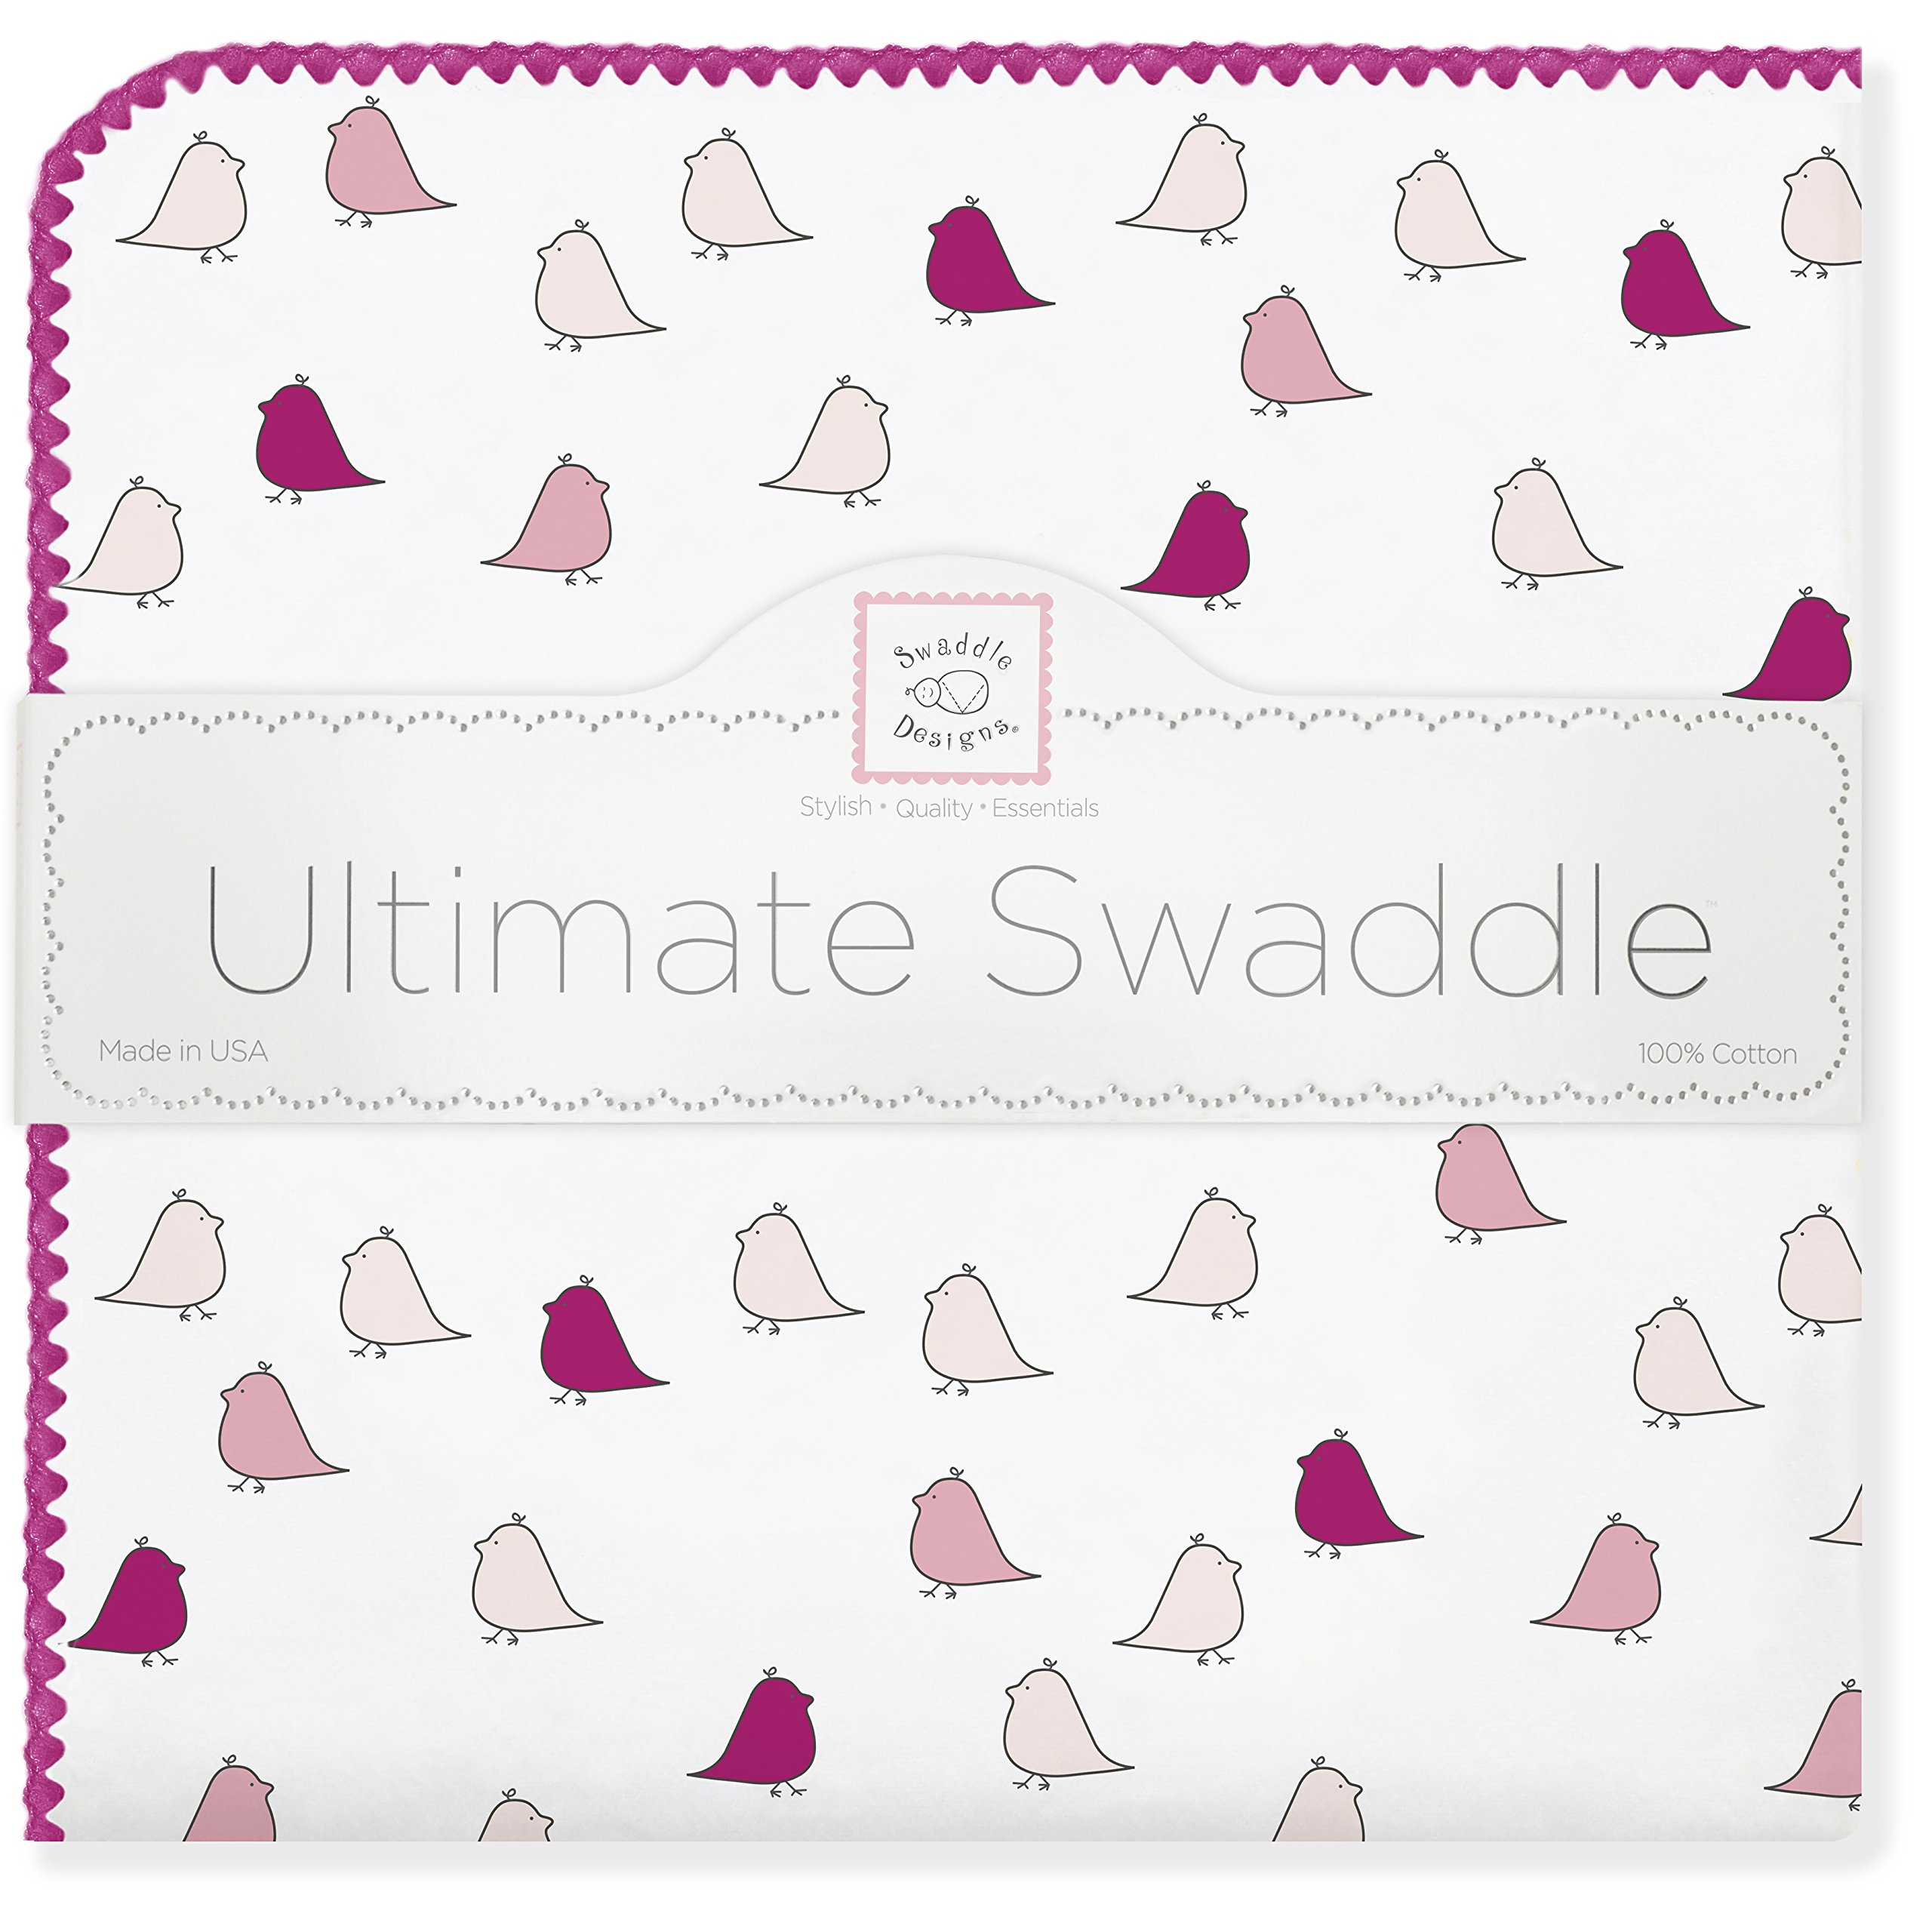 SwaddleDesigns Ultimate Swaddle, X-Large Receiving Blanket, Made in USA Premium Cotton Flannel, Very Berry Jewel Tone Little Chickies (Mom's Choice Award Winner) by SwaddleDesigns